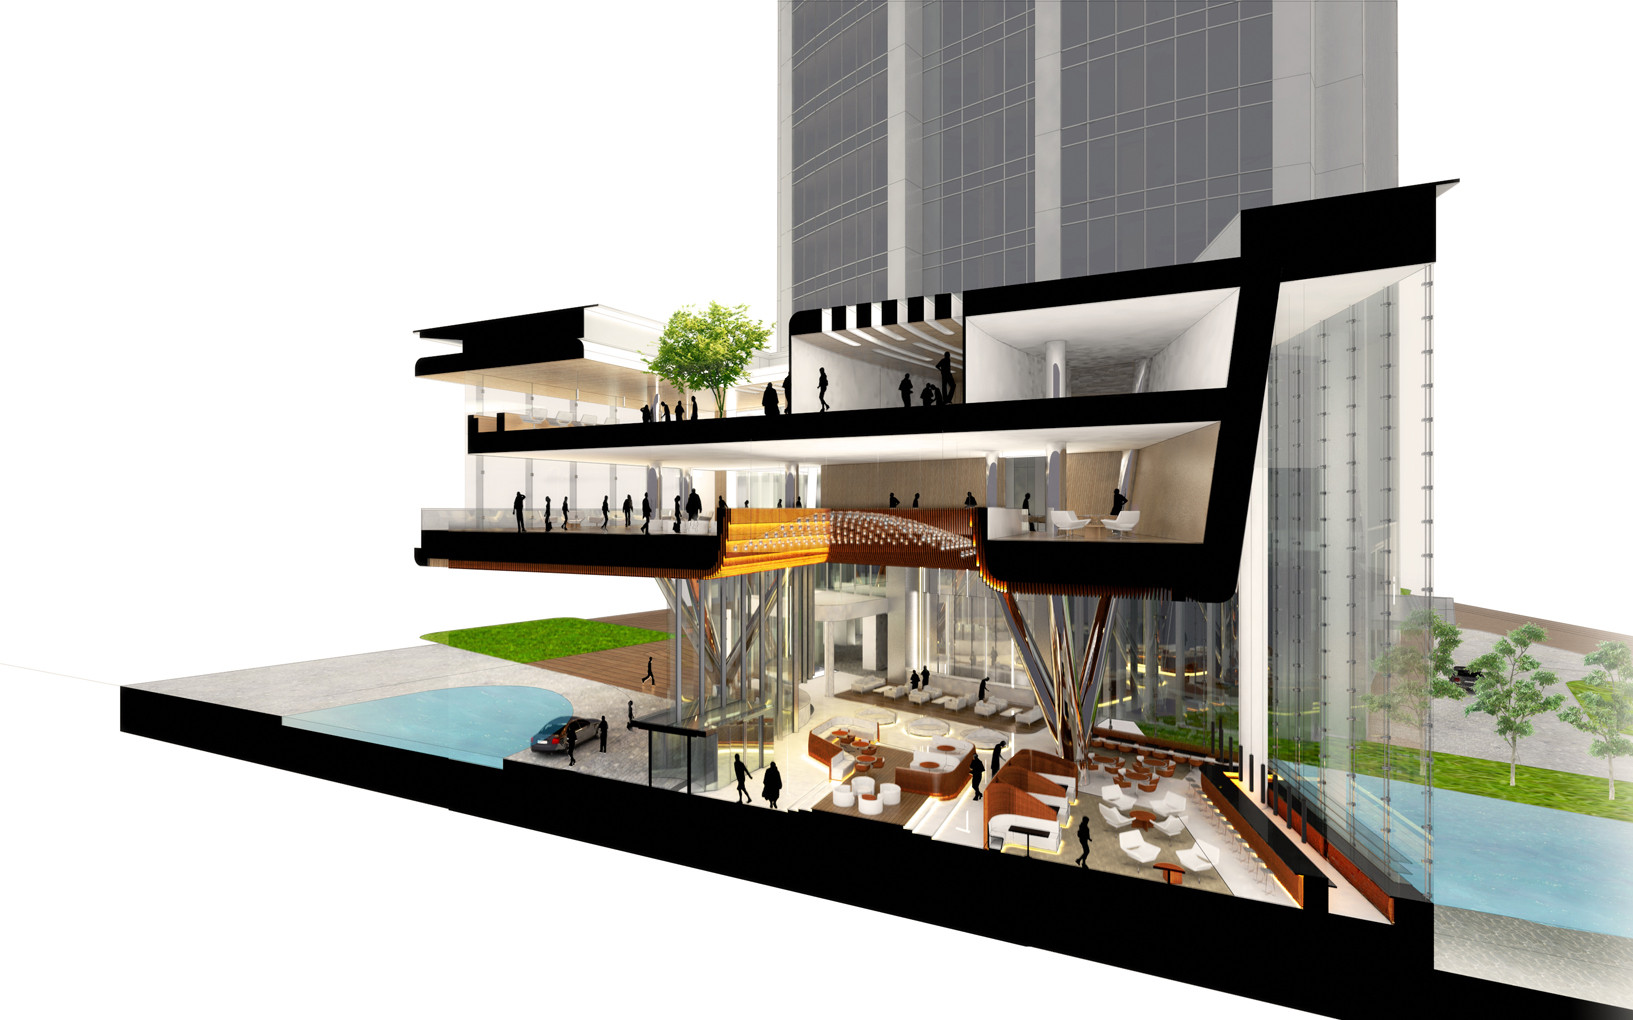 Gallery of woods bagot reveals design for wenling sheraton for Design hotel f 6 genf